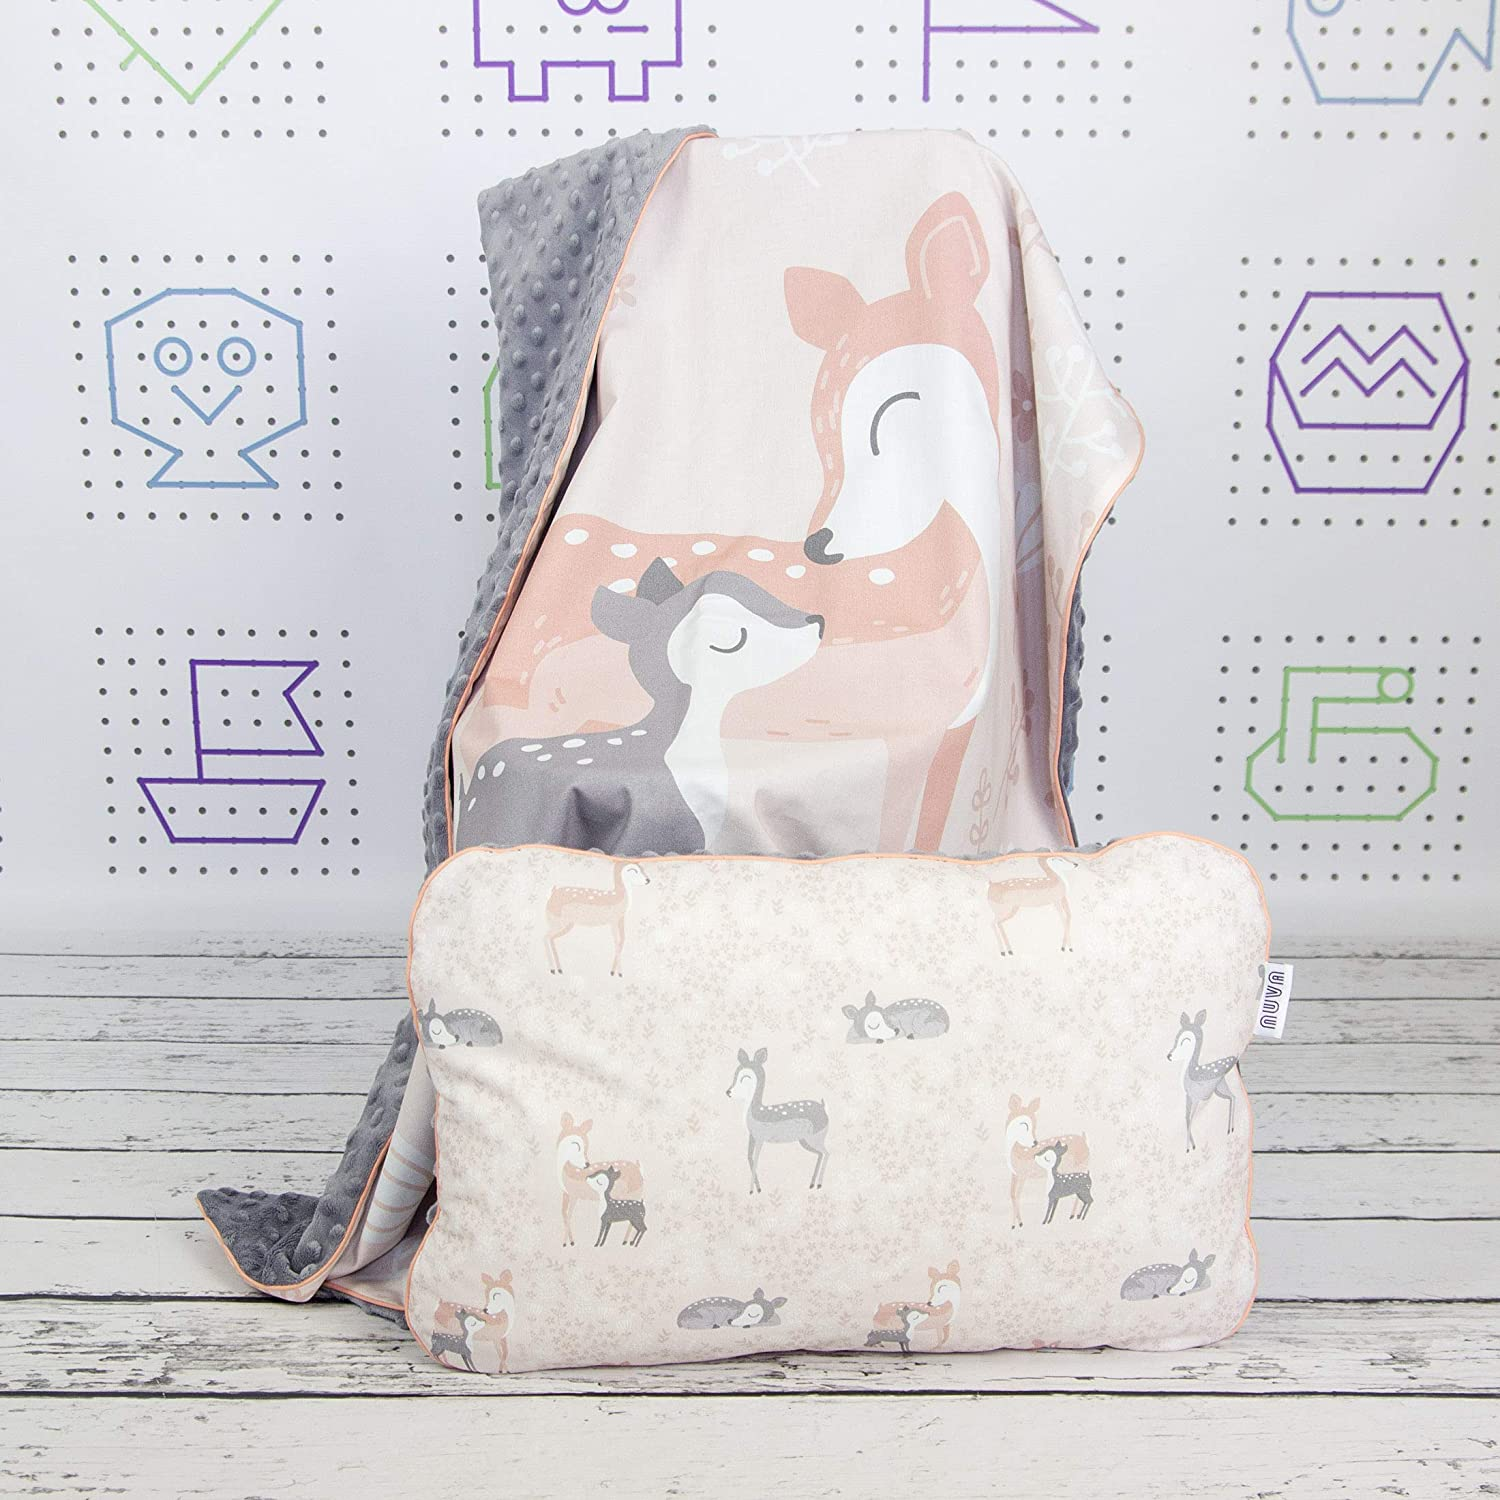 Soft Pink Roe Deer Baby Crib Bedding Minky Blanket With Panel Print And Flat Infant Pillow Nuva Amazon Co Uk Handmade